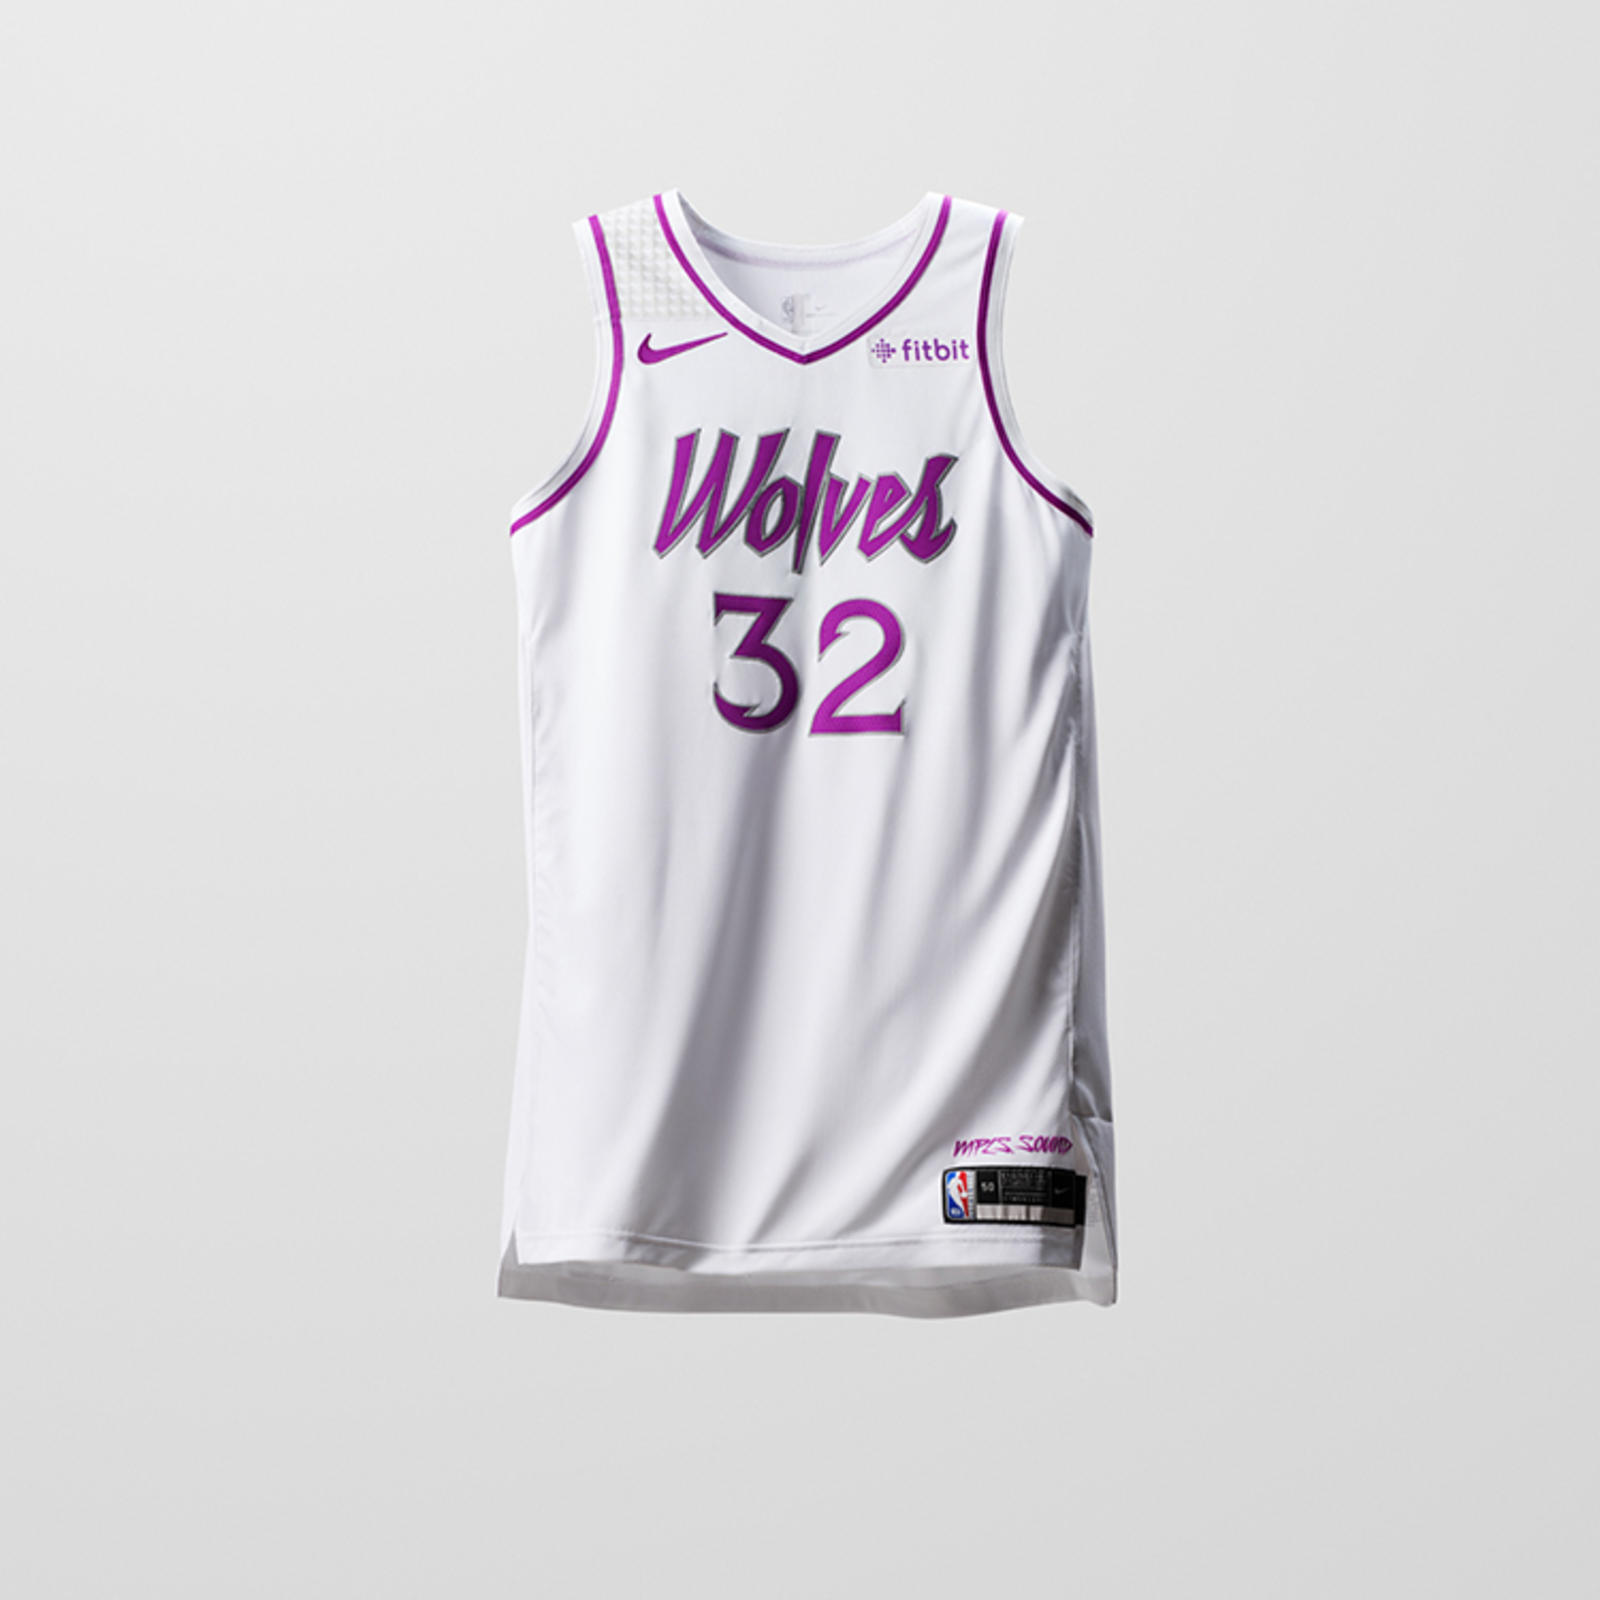 Introducing the Nike x NBA EARNED Edition Uniforms 14. MINNESOTA  TIMBERWOLVES 8af074081